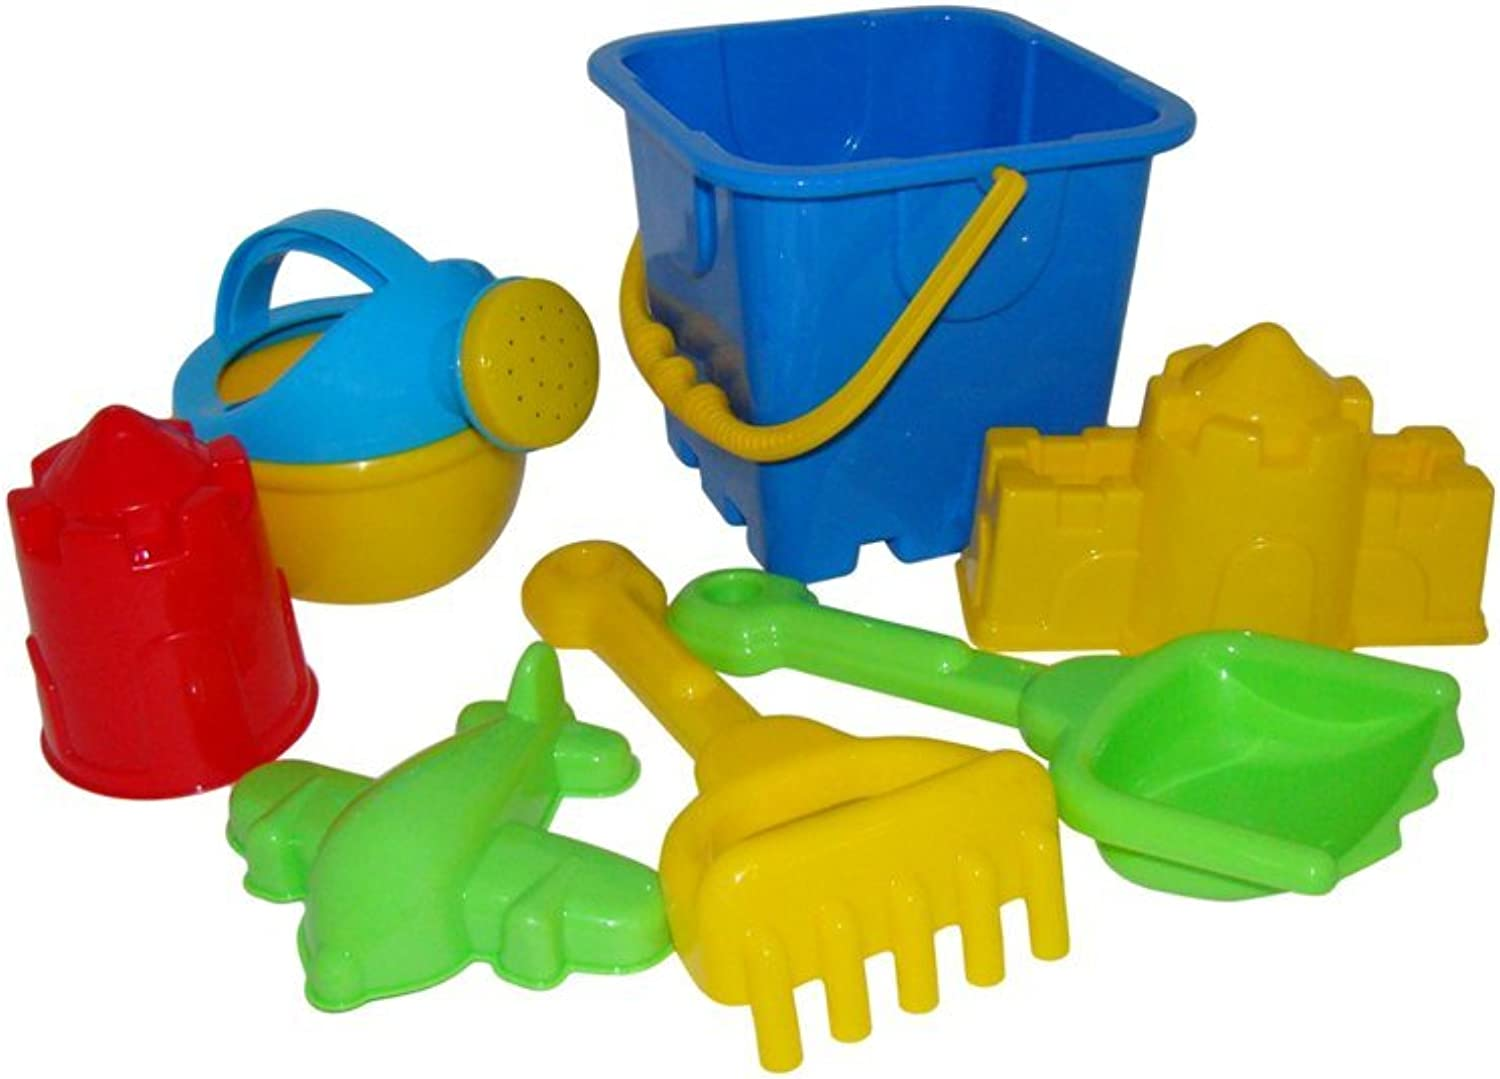 Polesie Polesie36407 No 384 Fortress Big Bucket Set Toy